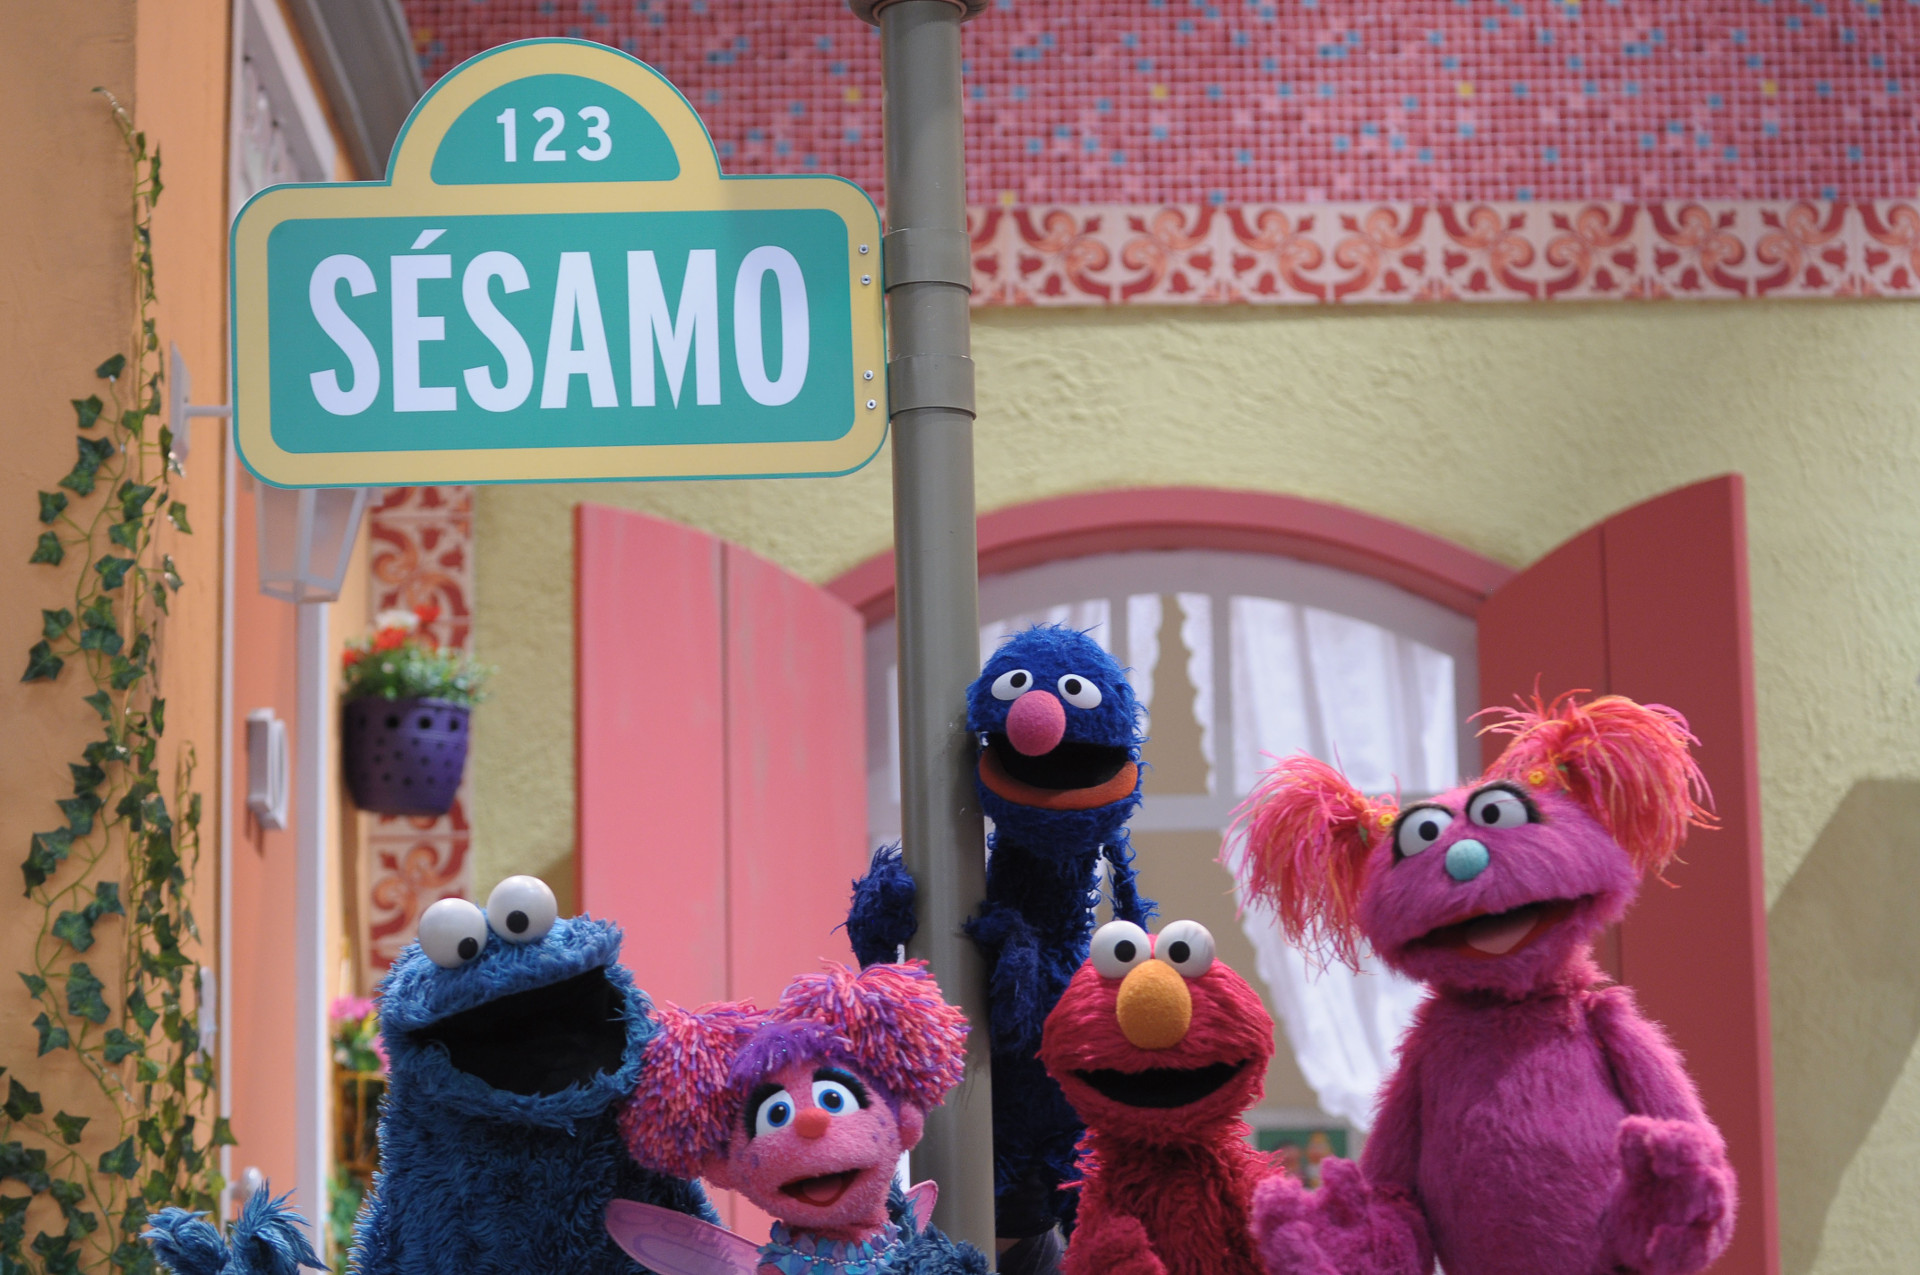 Come-Come, Abby, Grover, Elmo e Abby